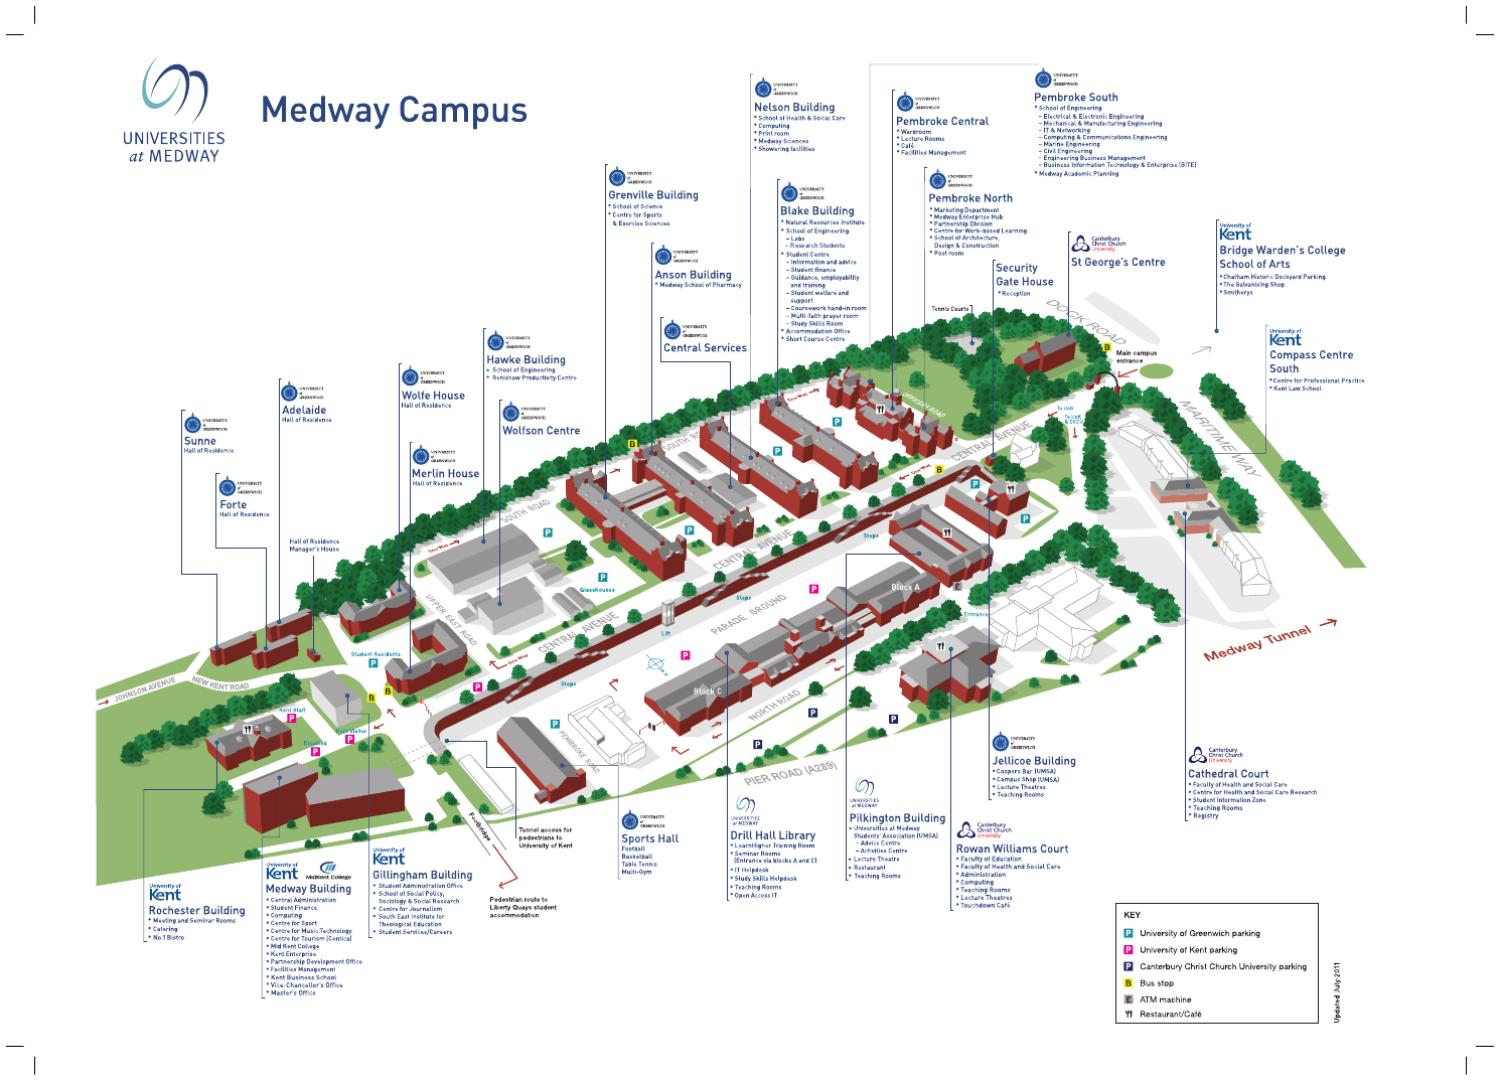 greenwich university campus map Universities At Medway Campus Map By University Of Kent Issuu greenwich university campus map